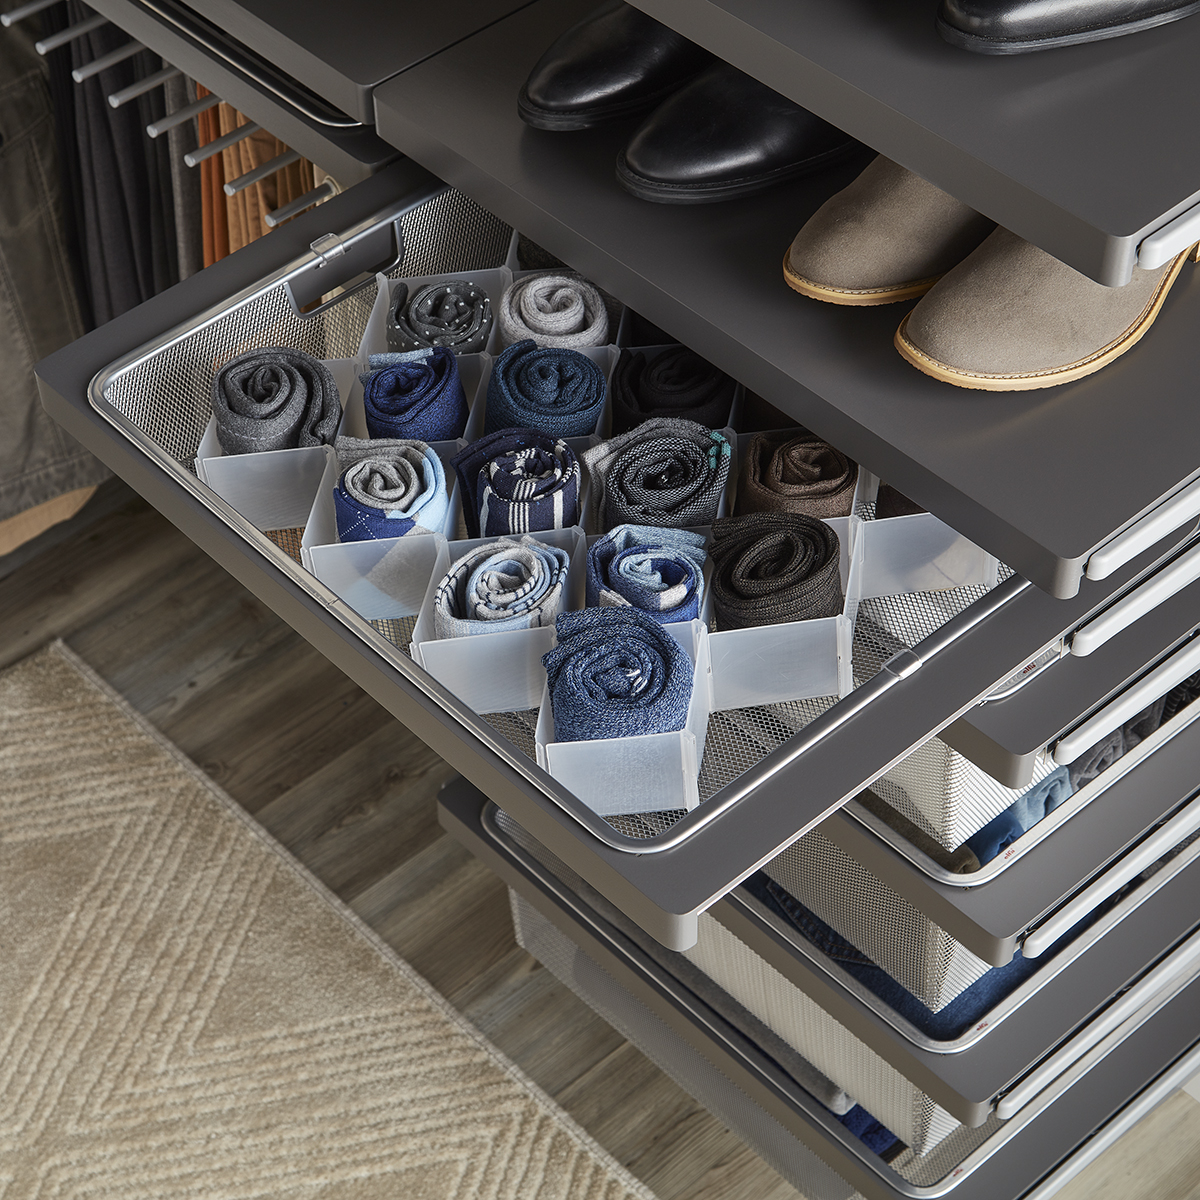 32 Compartment Drawer Organizer The Container Store